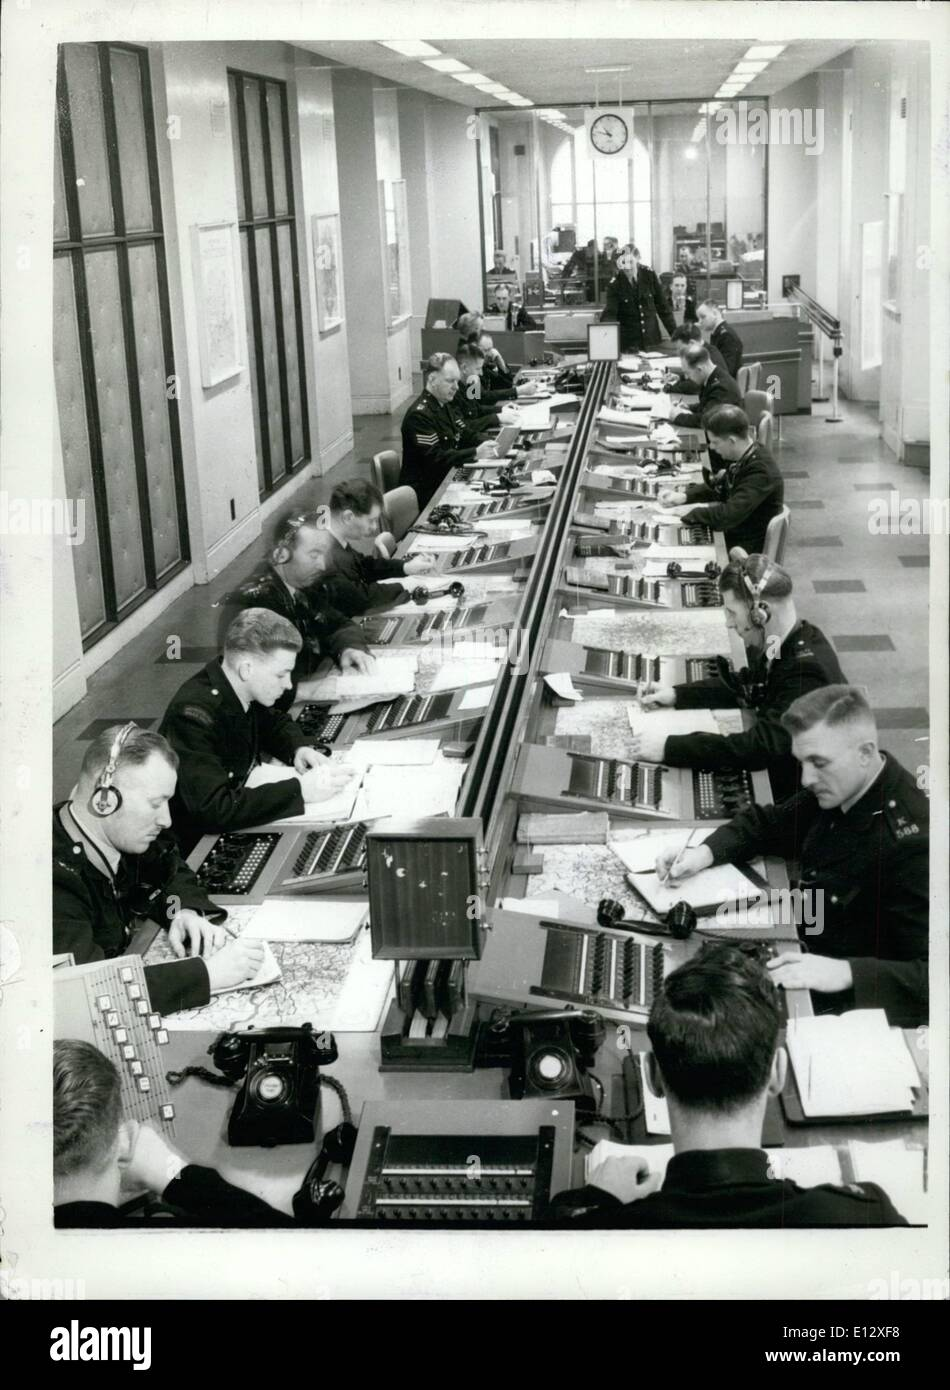 Feb. 25, 2012 - Nerve Centre: In the background telephone operators deal with enquiries, urgent or otherwise; logists and results;in the foreground, operators in communication with squad cars and other stations. - Stock Image